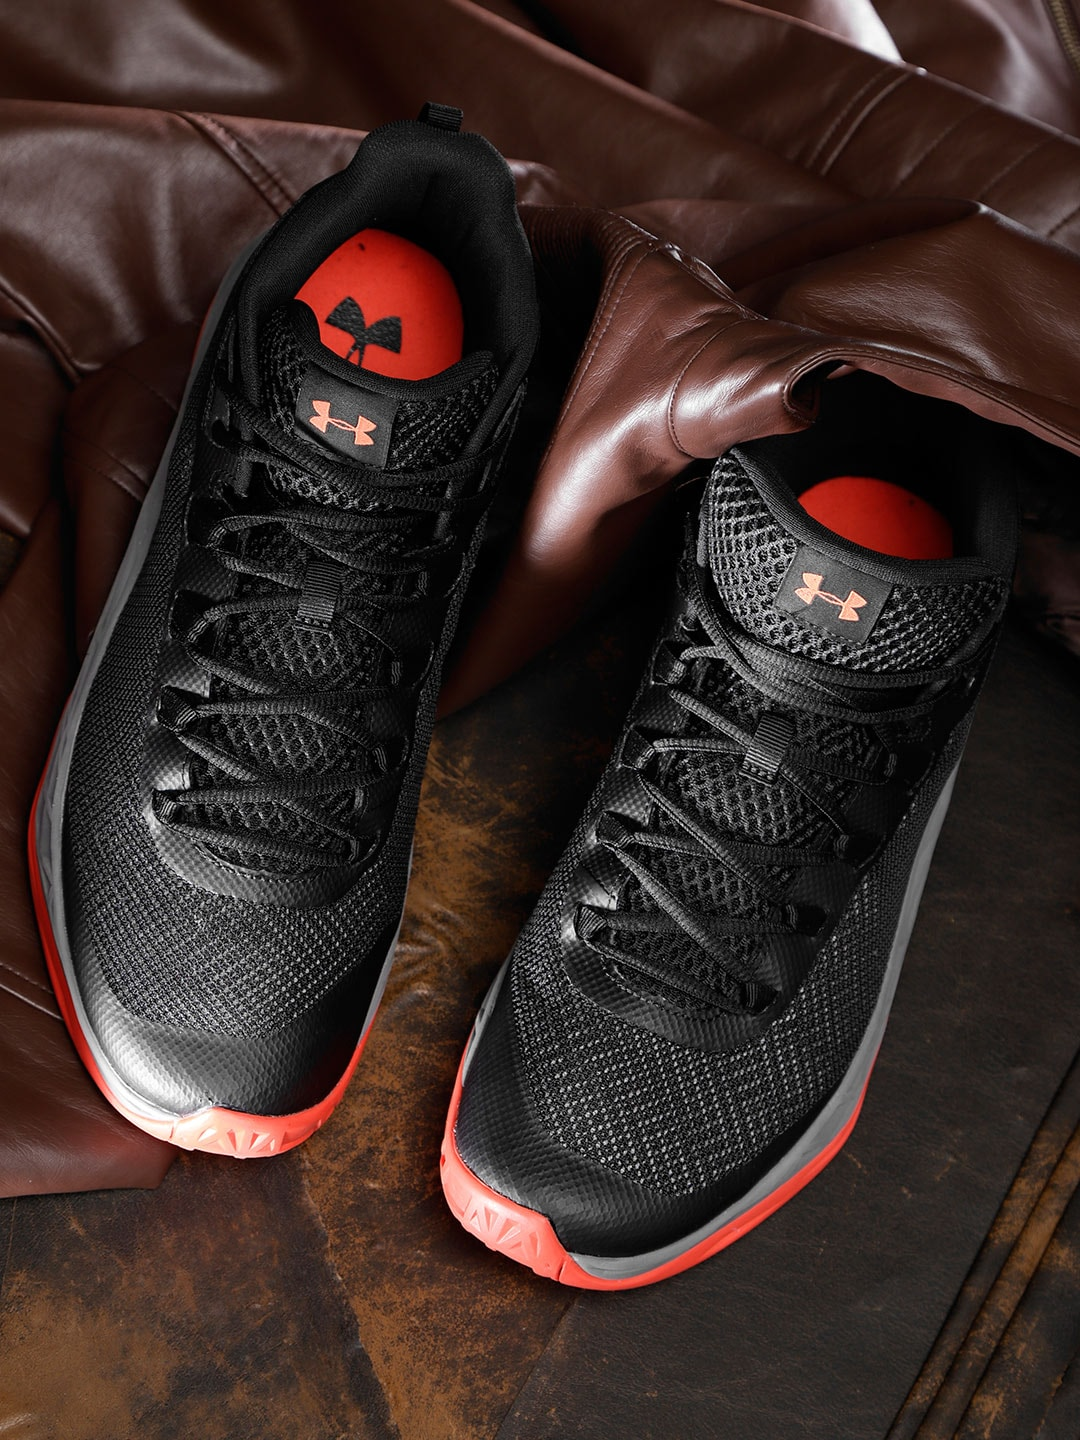 5b3d699cc0b4 Basket Ball Shoes - Buy Basket Ball Shoes Online